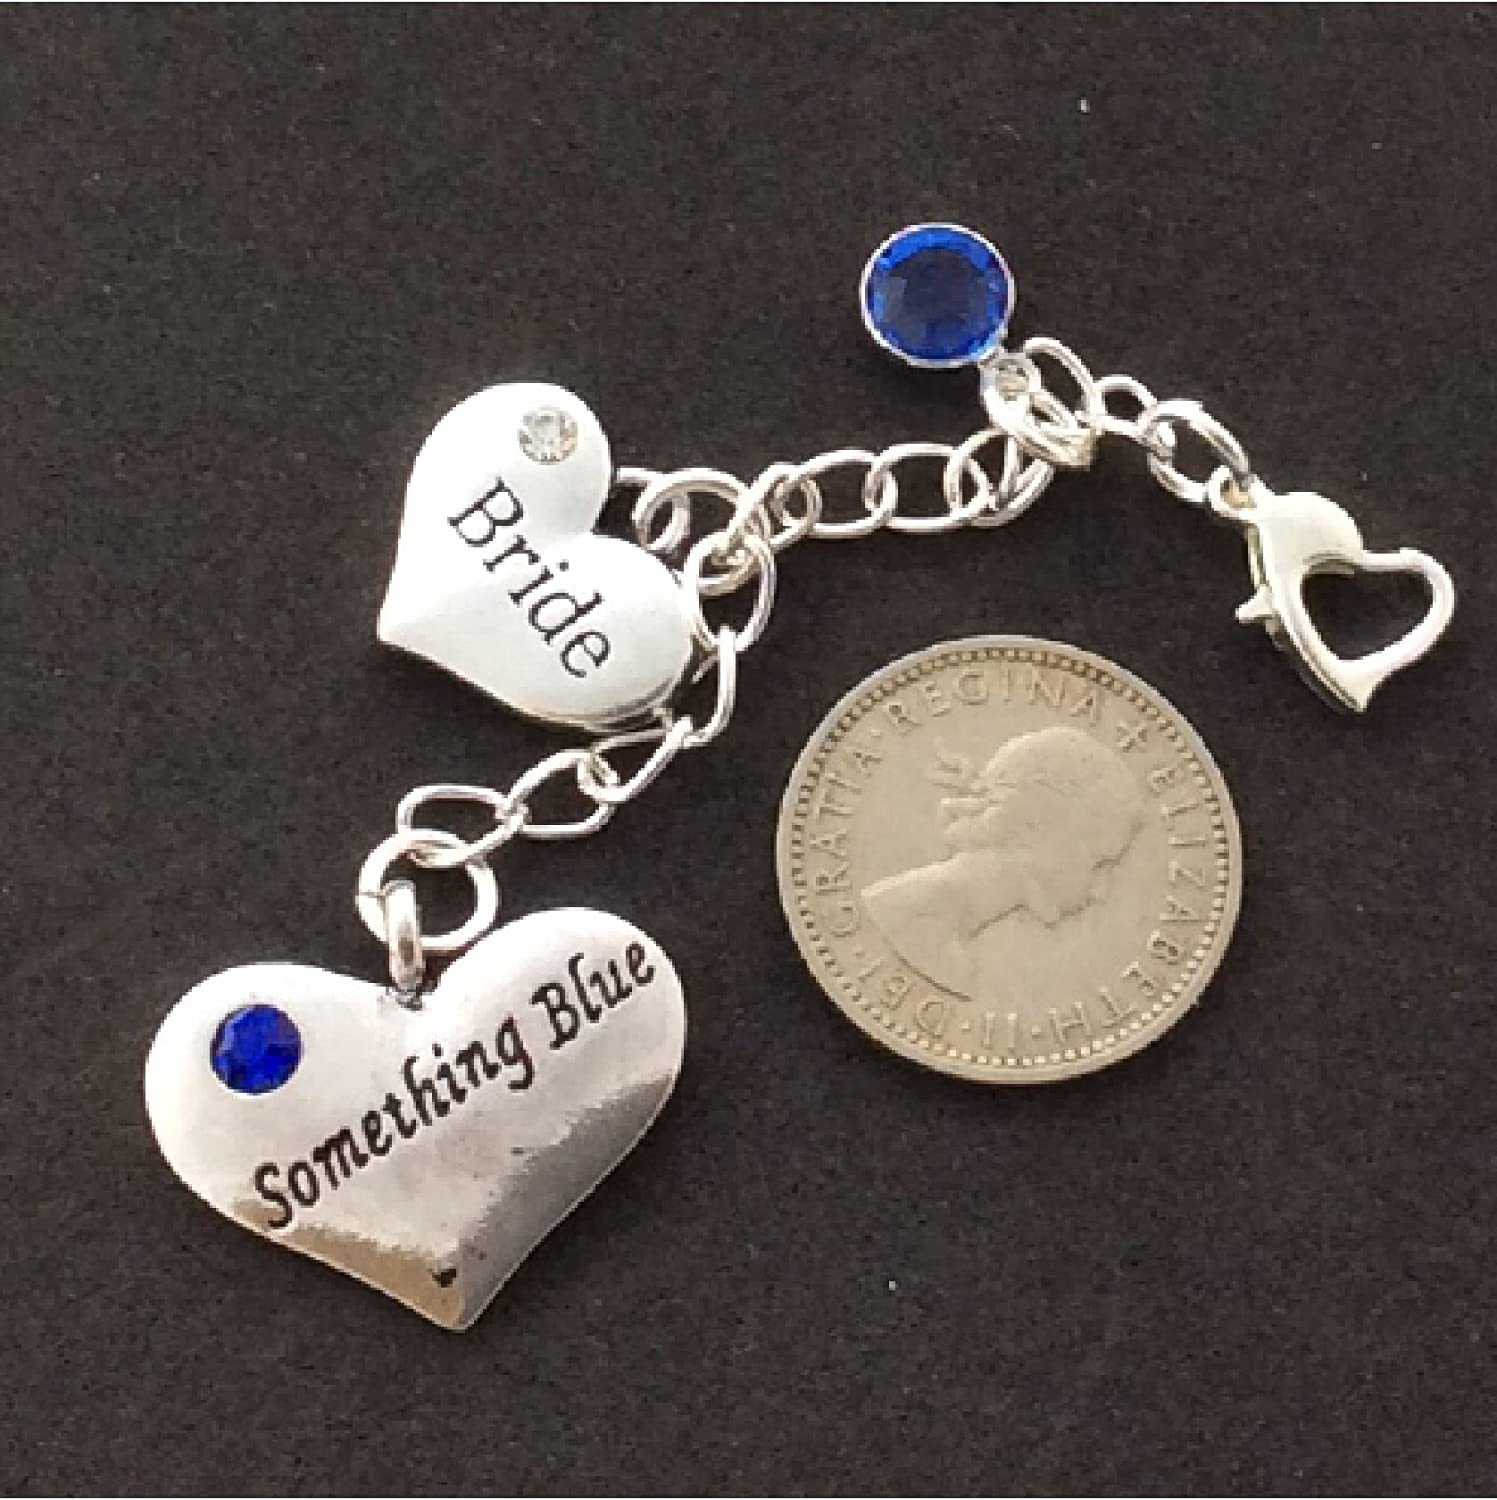 Amazon.com: Brides Garter Charm, Something Blue, with REAL SIXPENCE, wedding,shower,bridal jewelry gift: Arts, Crafts & Sewing